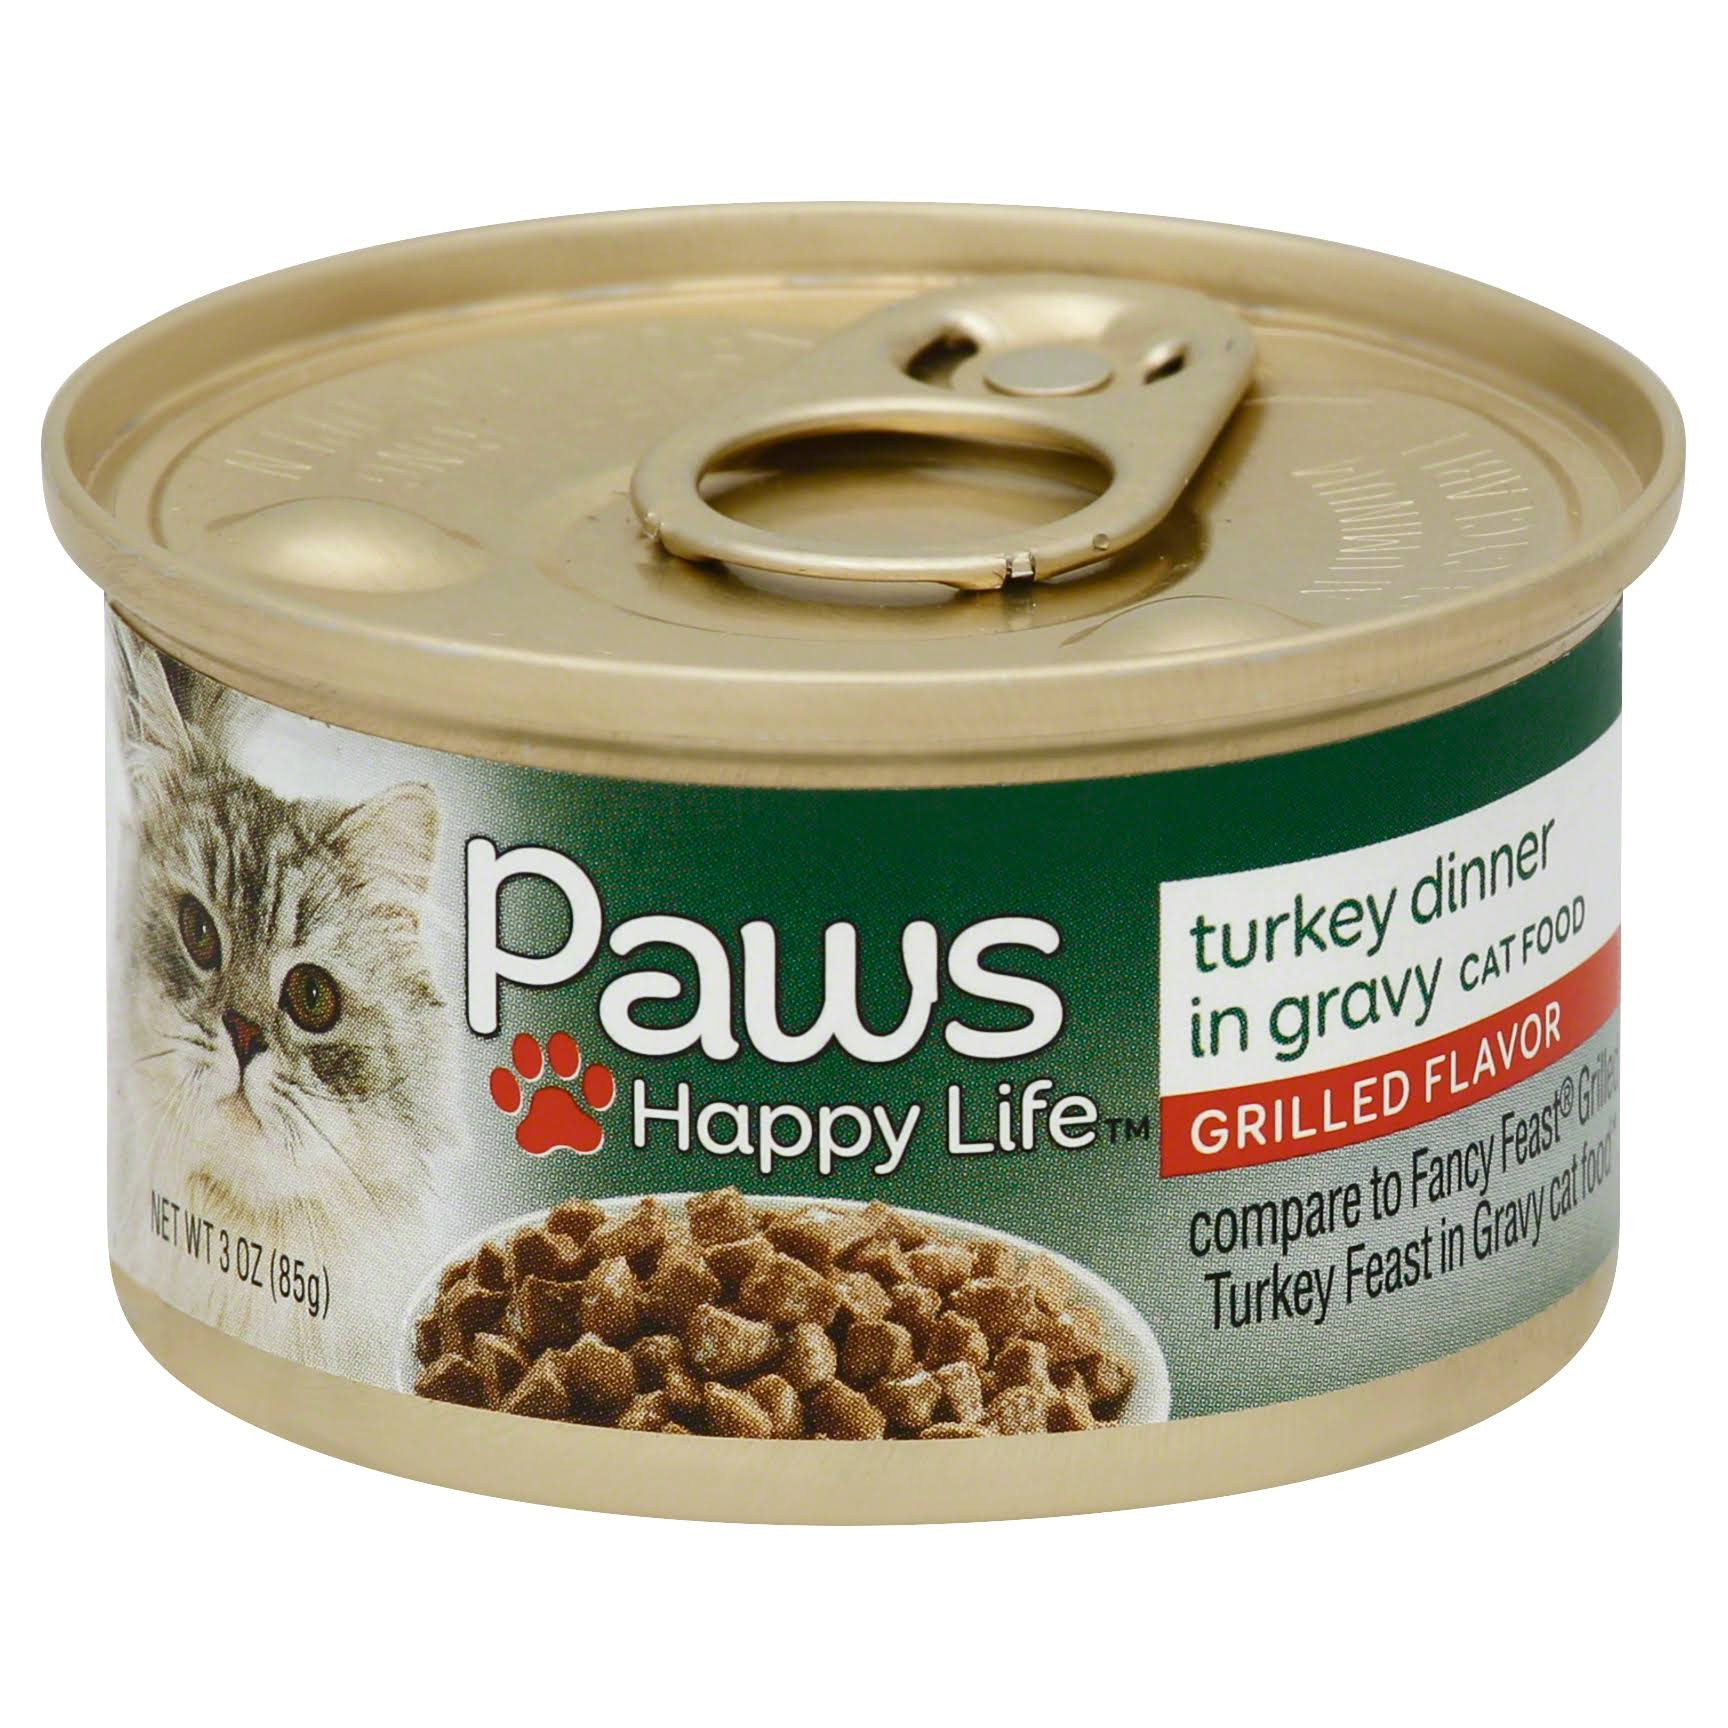 Paws Happy Life Cat Food, Grilled Flavor, Turkey Dinner, in Gravy - 3 oz